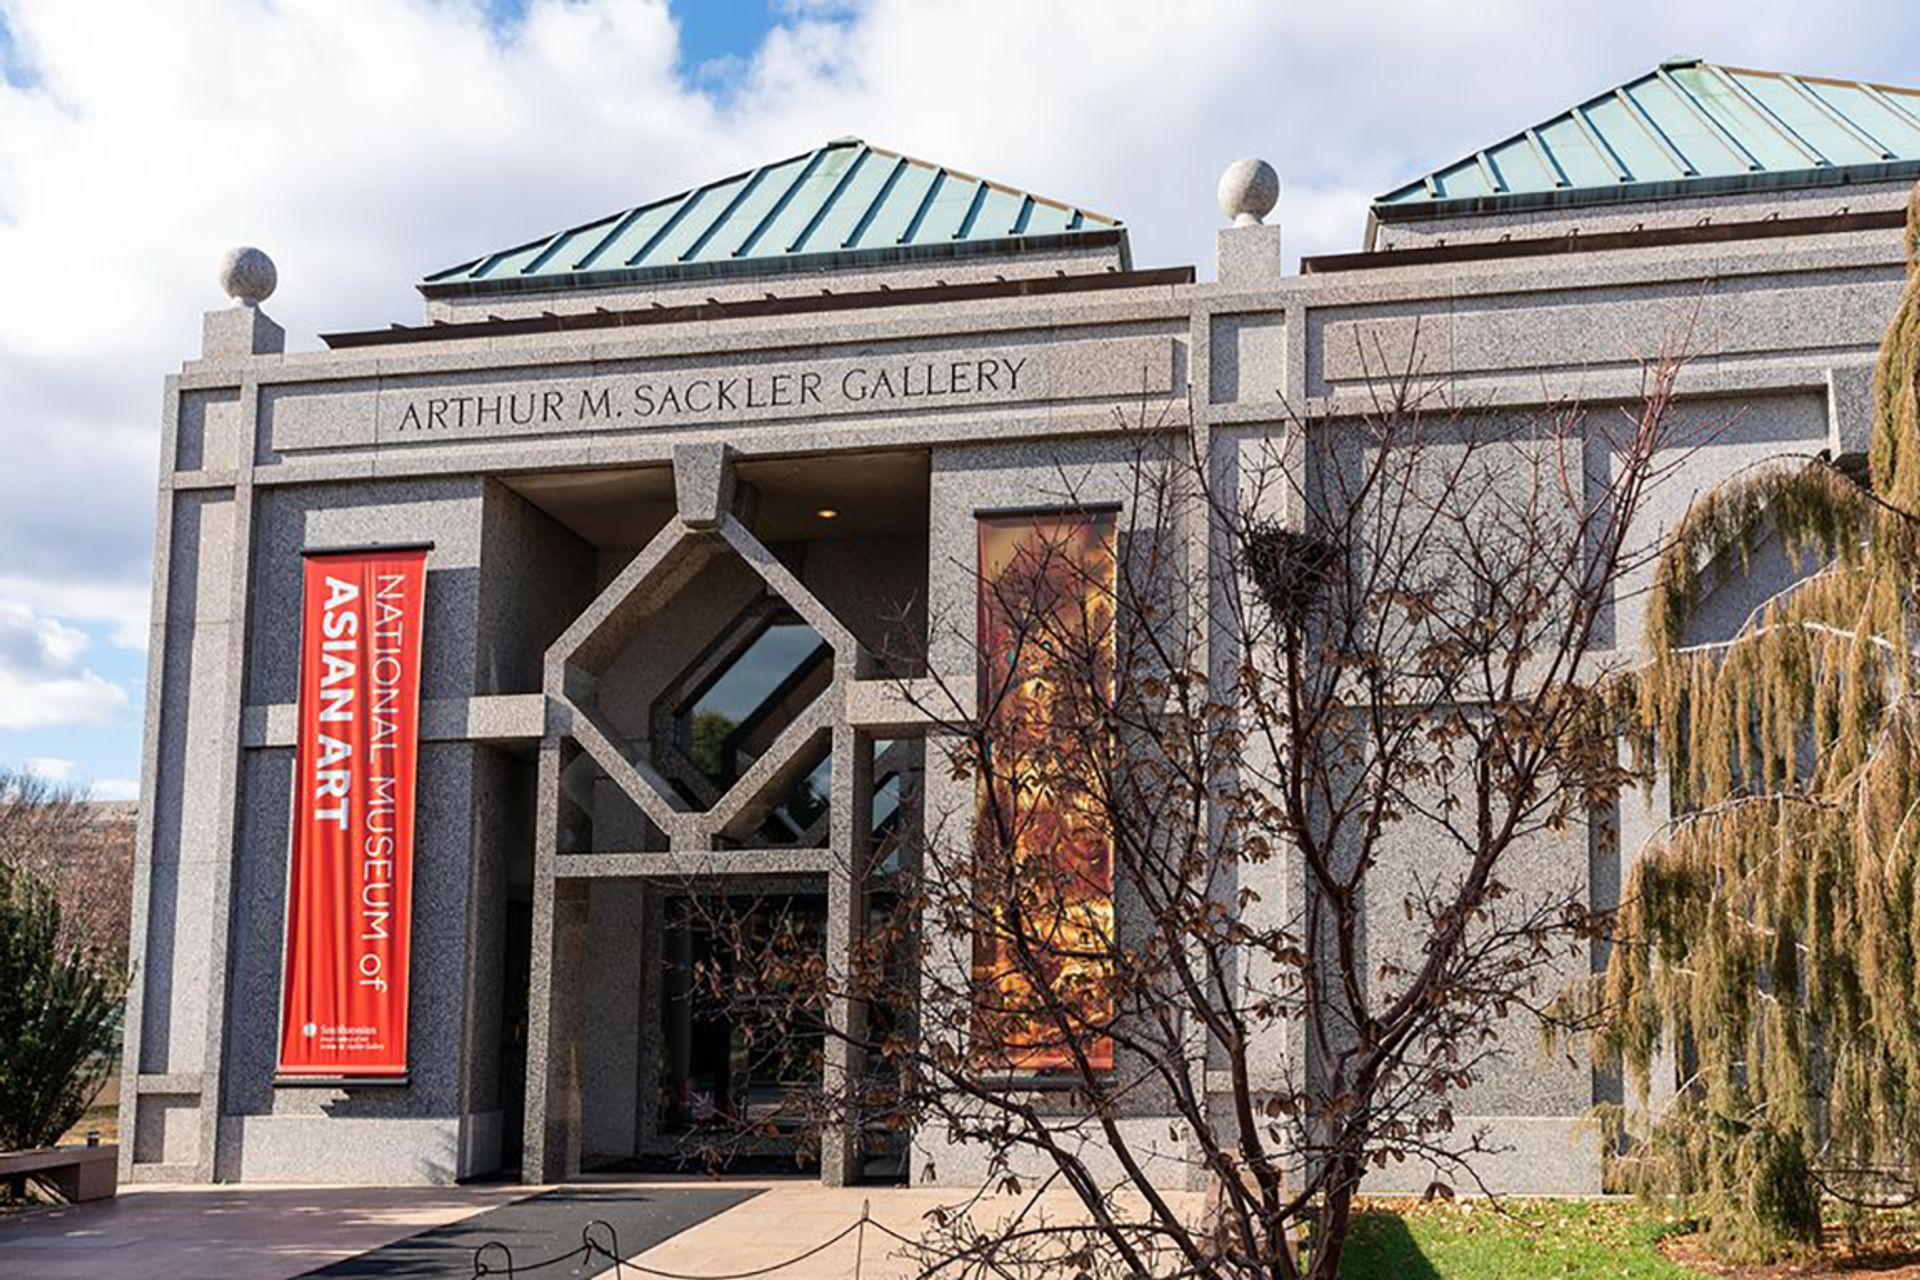 The Smithsonian's National Museum of Asian Art, comprising the Freer Gallery of Art and Arthur M. Sackler Gallery, has been allotted a $2.5m grant From Lilly Endowment Inc. to support a portfolio of projects that highlight the intersection of Asian art and religious diversity Freer and Sackler staff